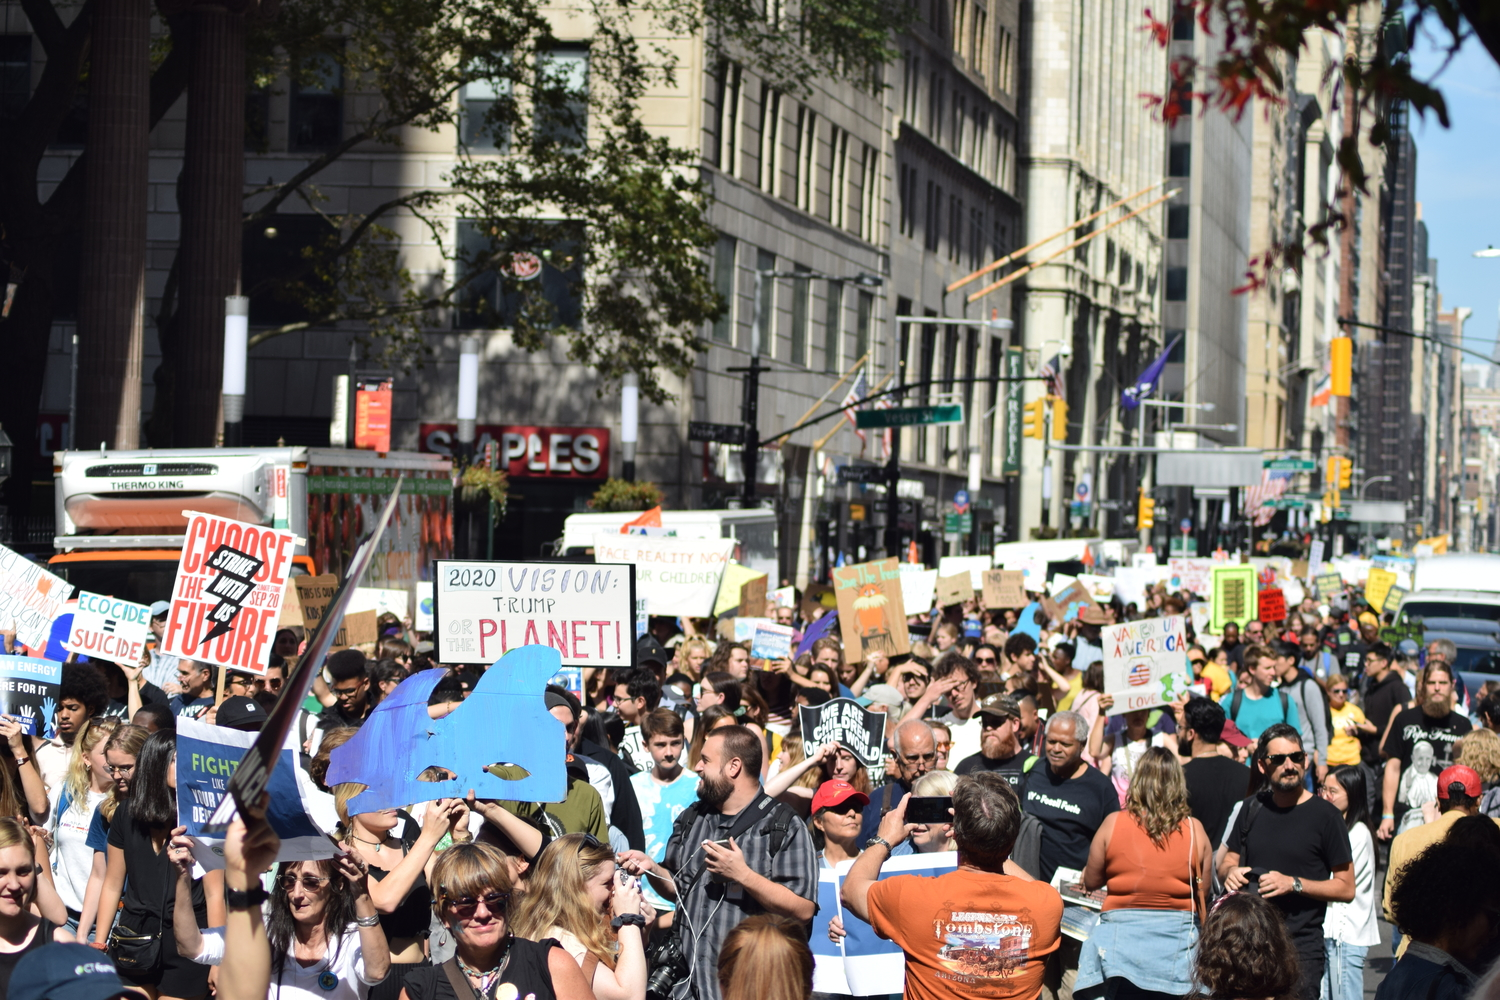 During the four years of Donald Trump's presidency, New York City and the Bronx Science population have participated in many protests calling for progressive policies to be enacted.